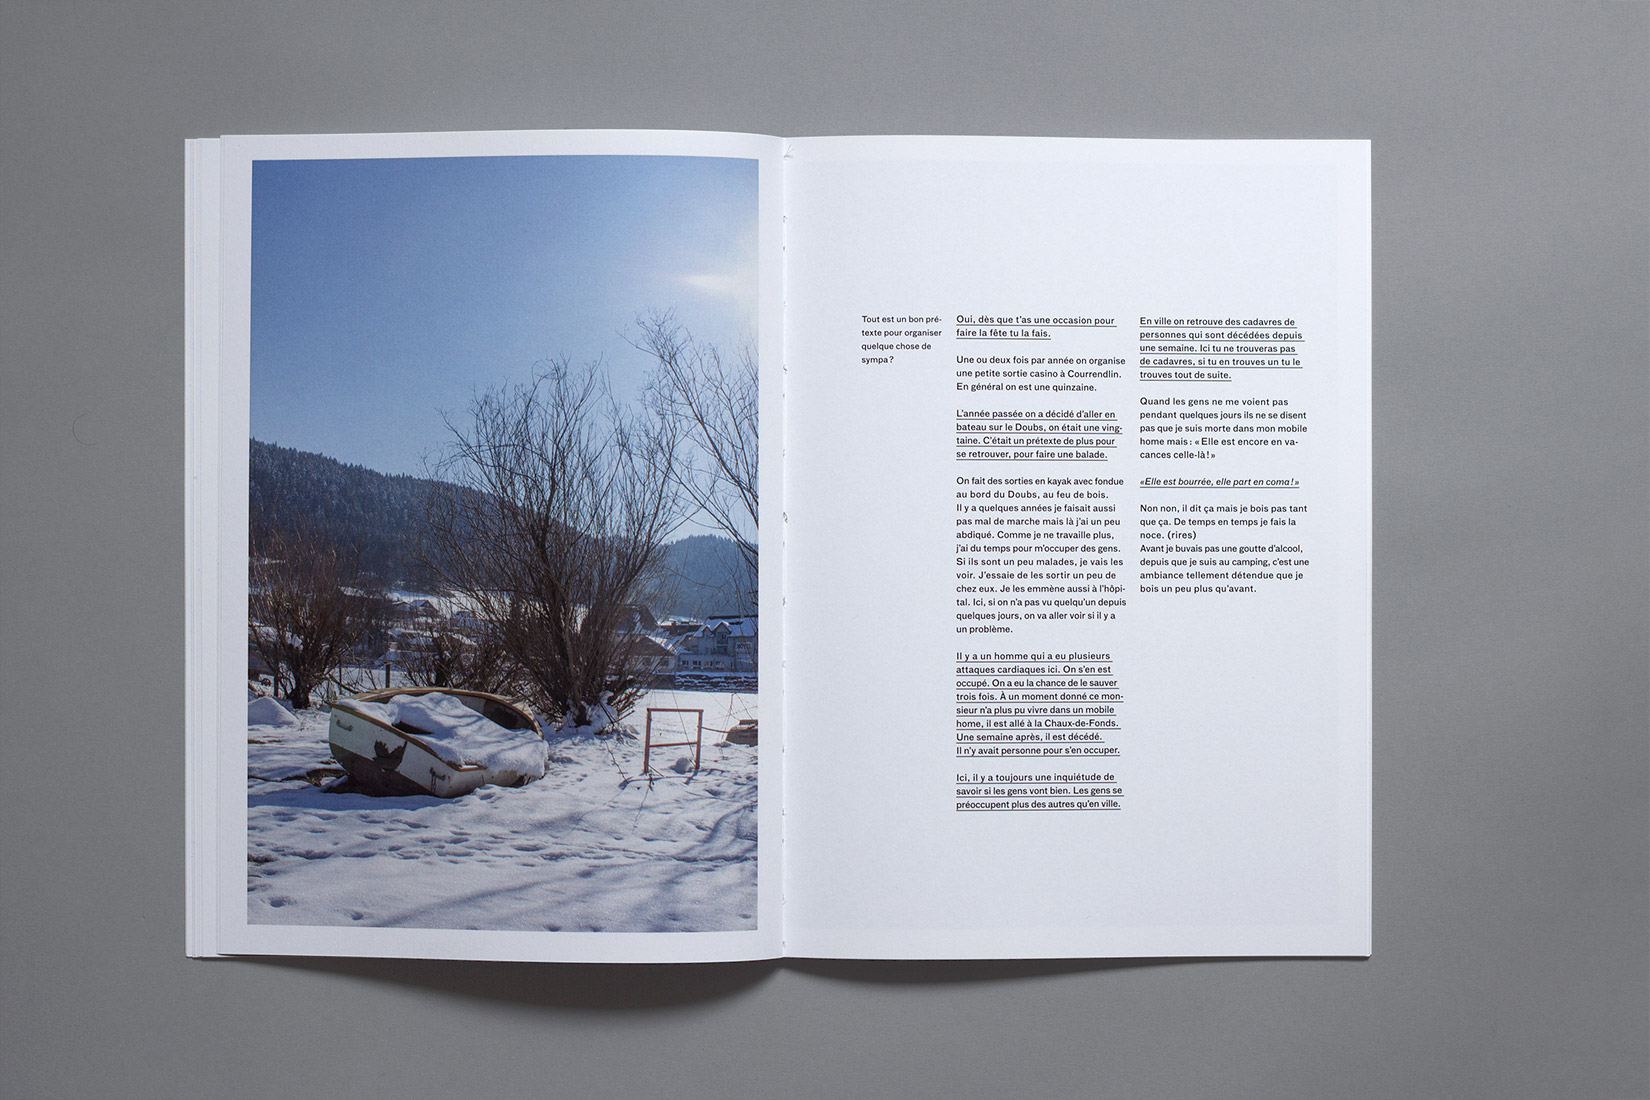 Lac des brenets - boat, winter, snow, book, photography